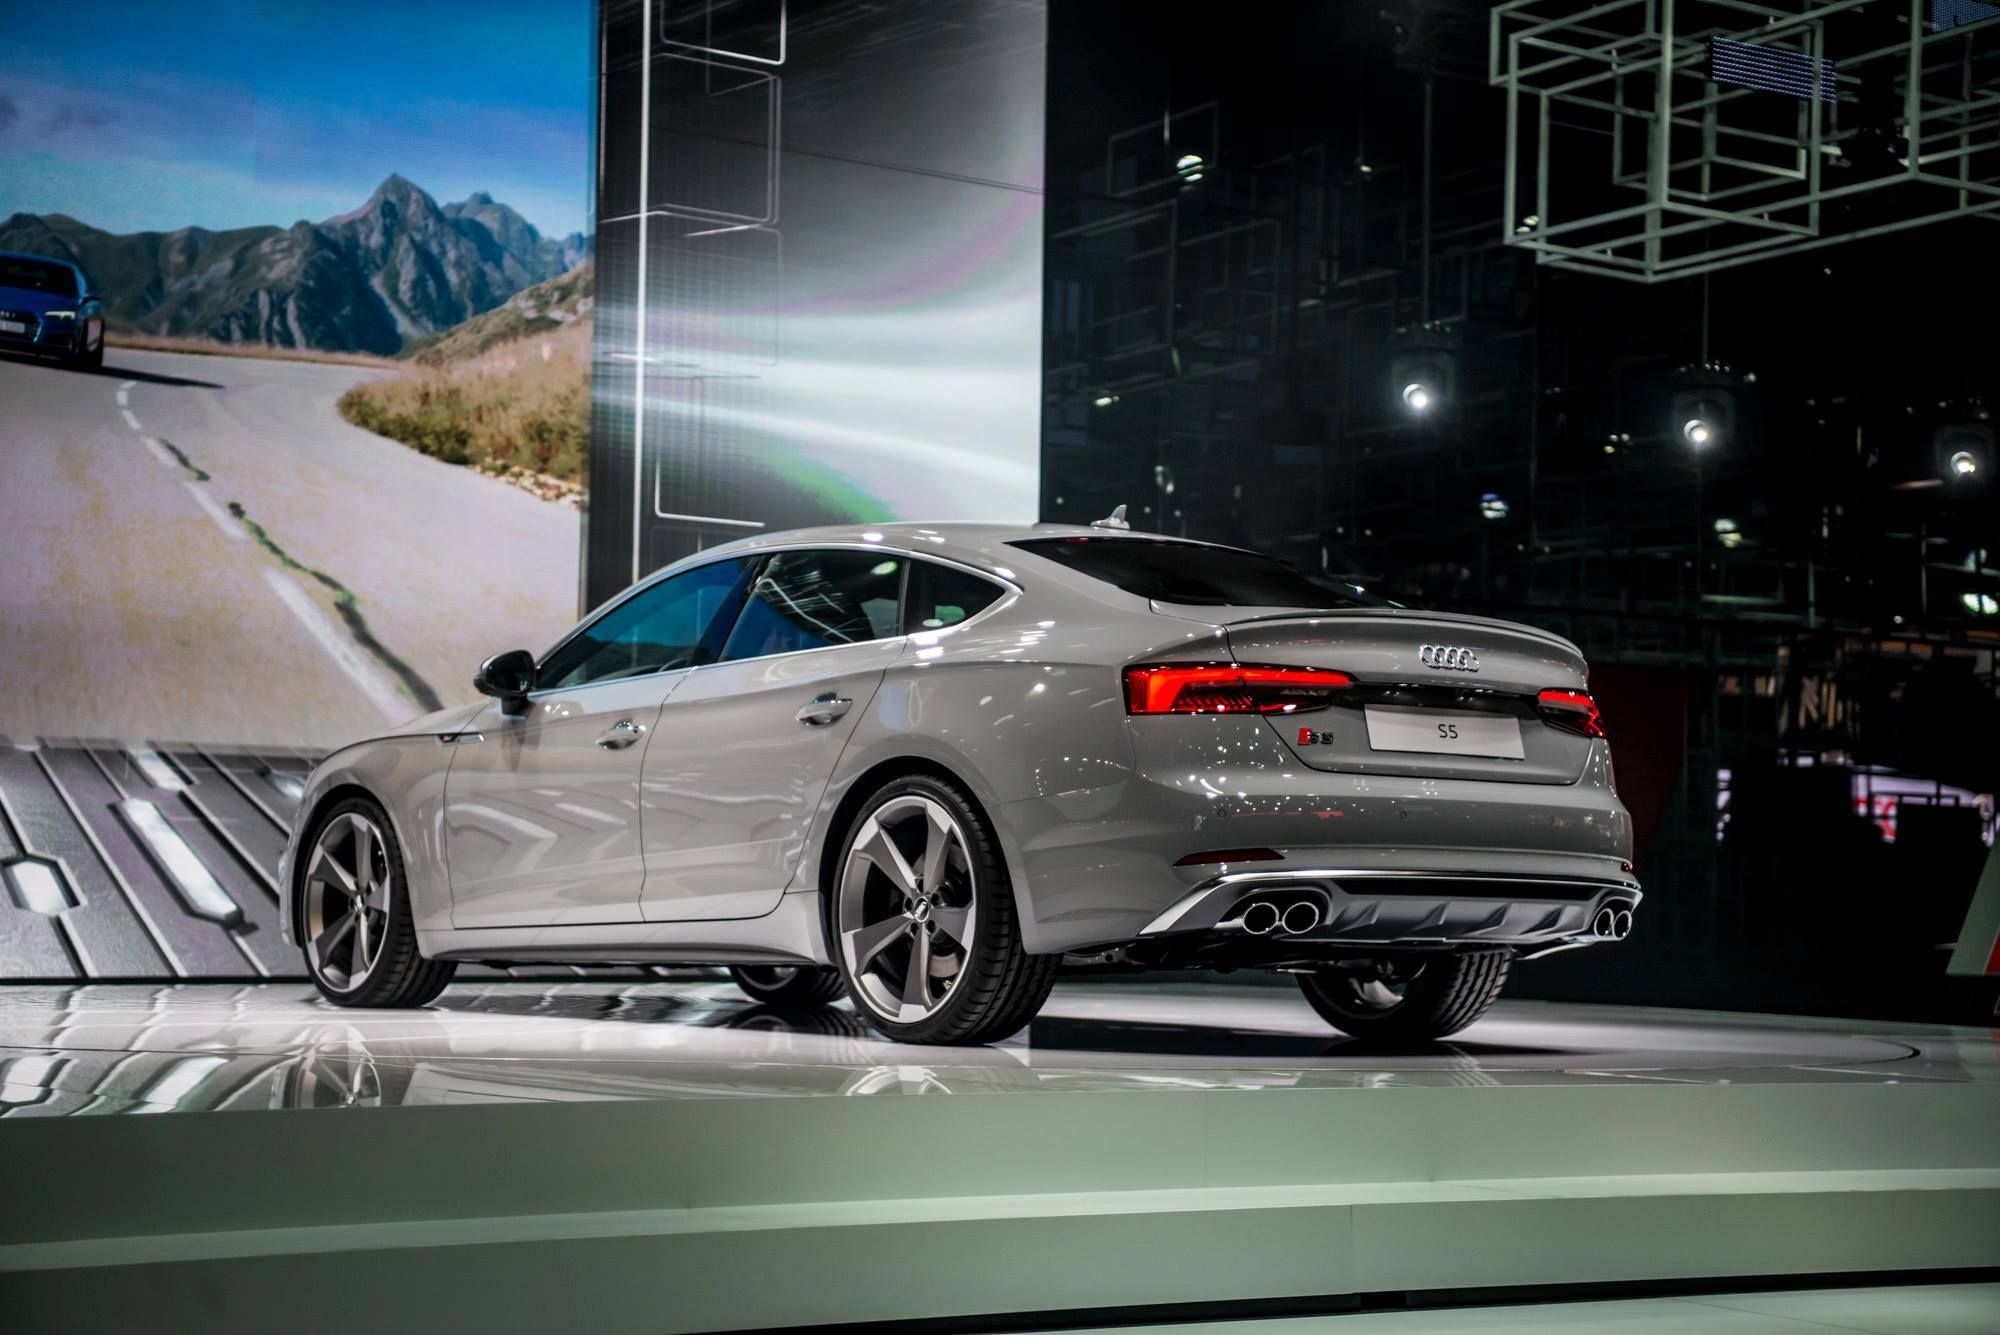 audi s5 sportback nardo grey future goals pinterest audi s5 and cars. Black Bedroom Furniture Sets. Home Design Ideas